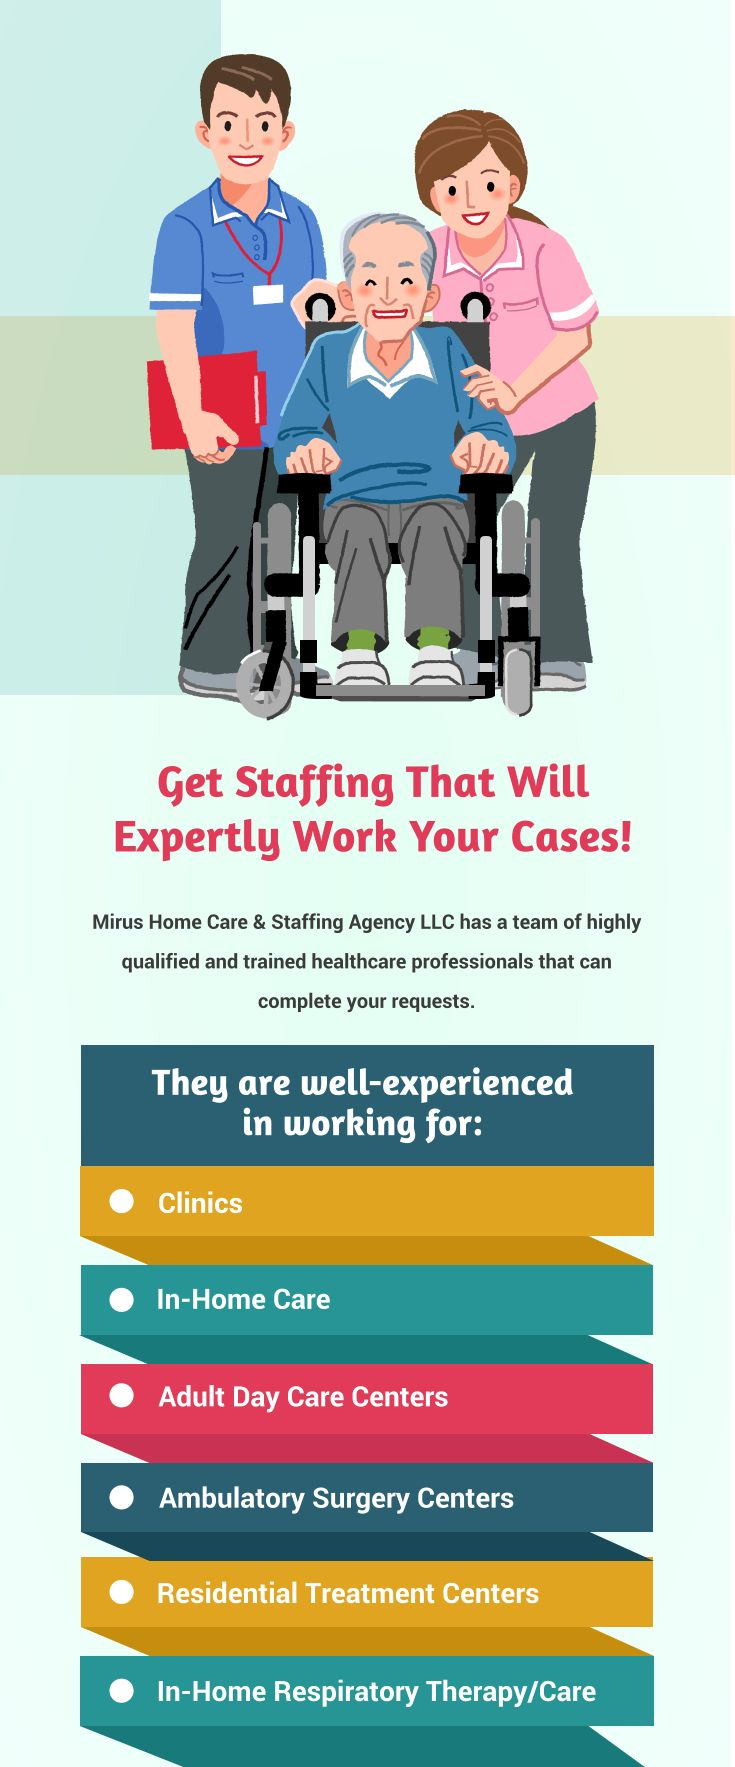 Get staffing that will expertly work your cases